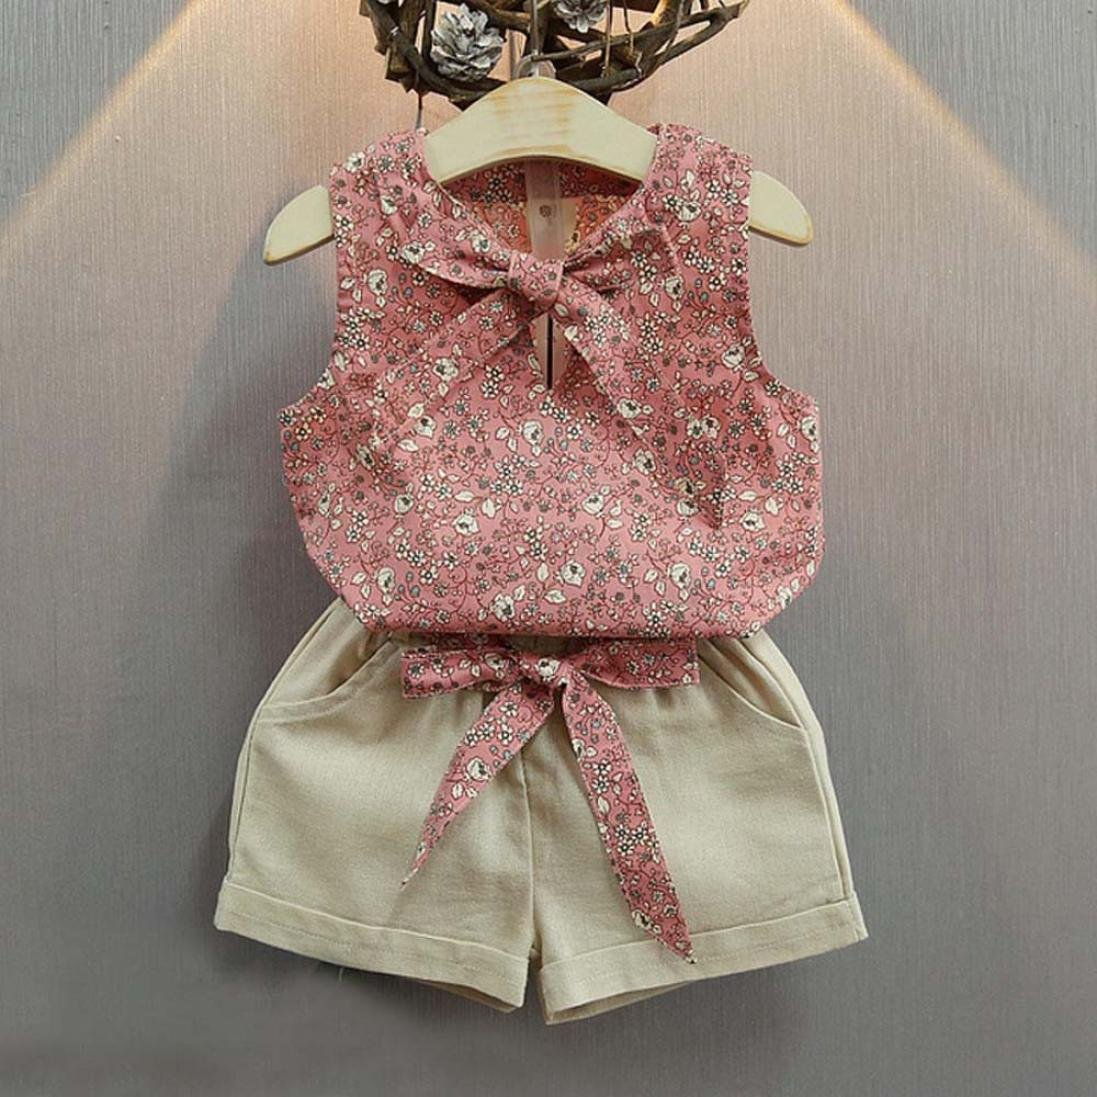 Kolylong for 2-7Years Kids Baby Girls Lovely Floral Bowknot Outfits Vest T-Shirt+Shorts Clothes Set